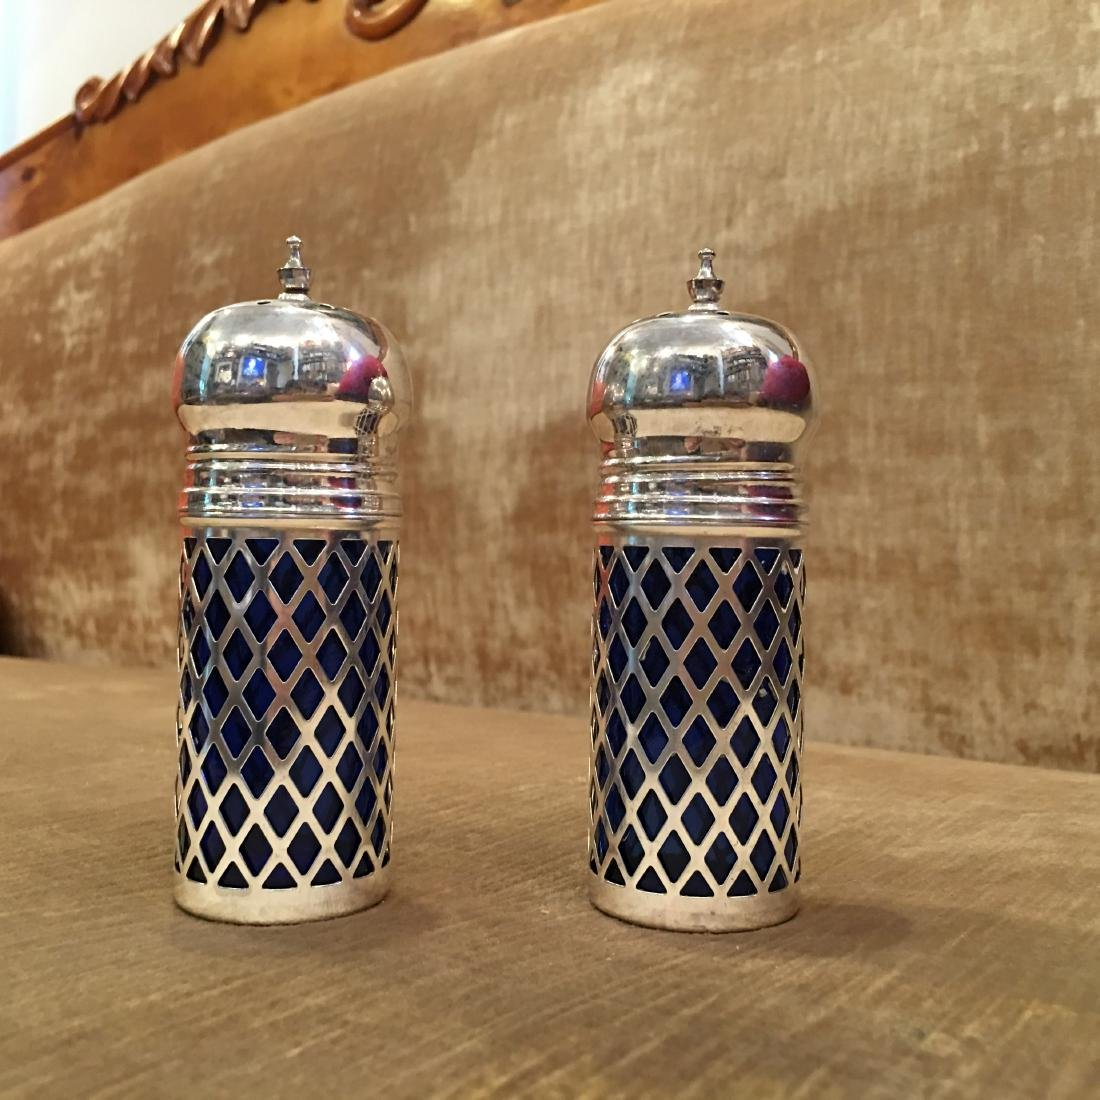 Godinger Cobalt Silver Salt & Pepper Shakers